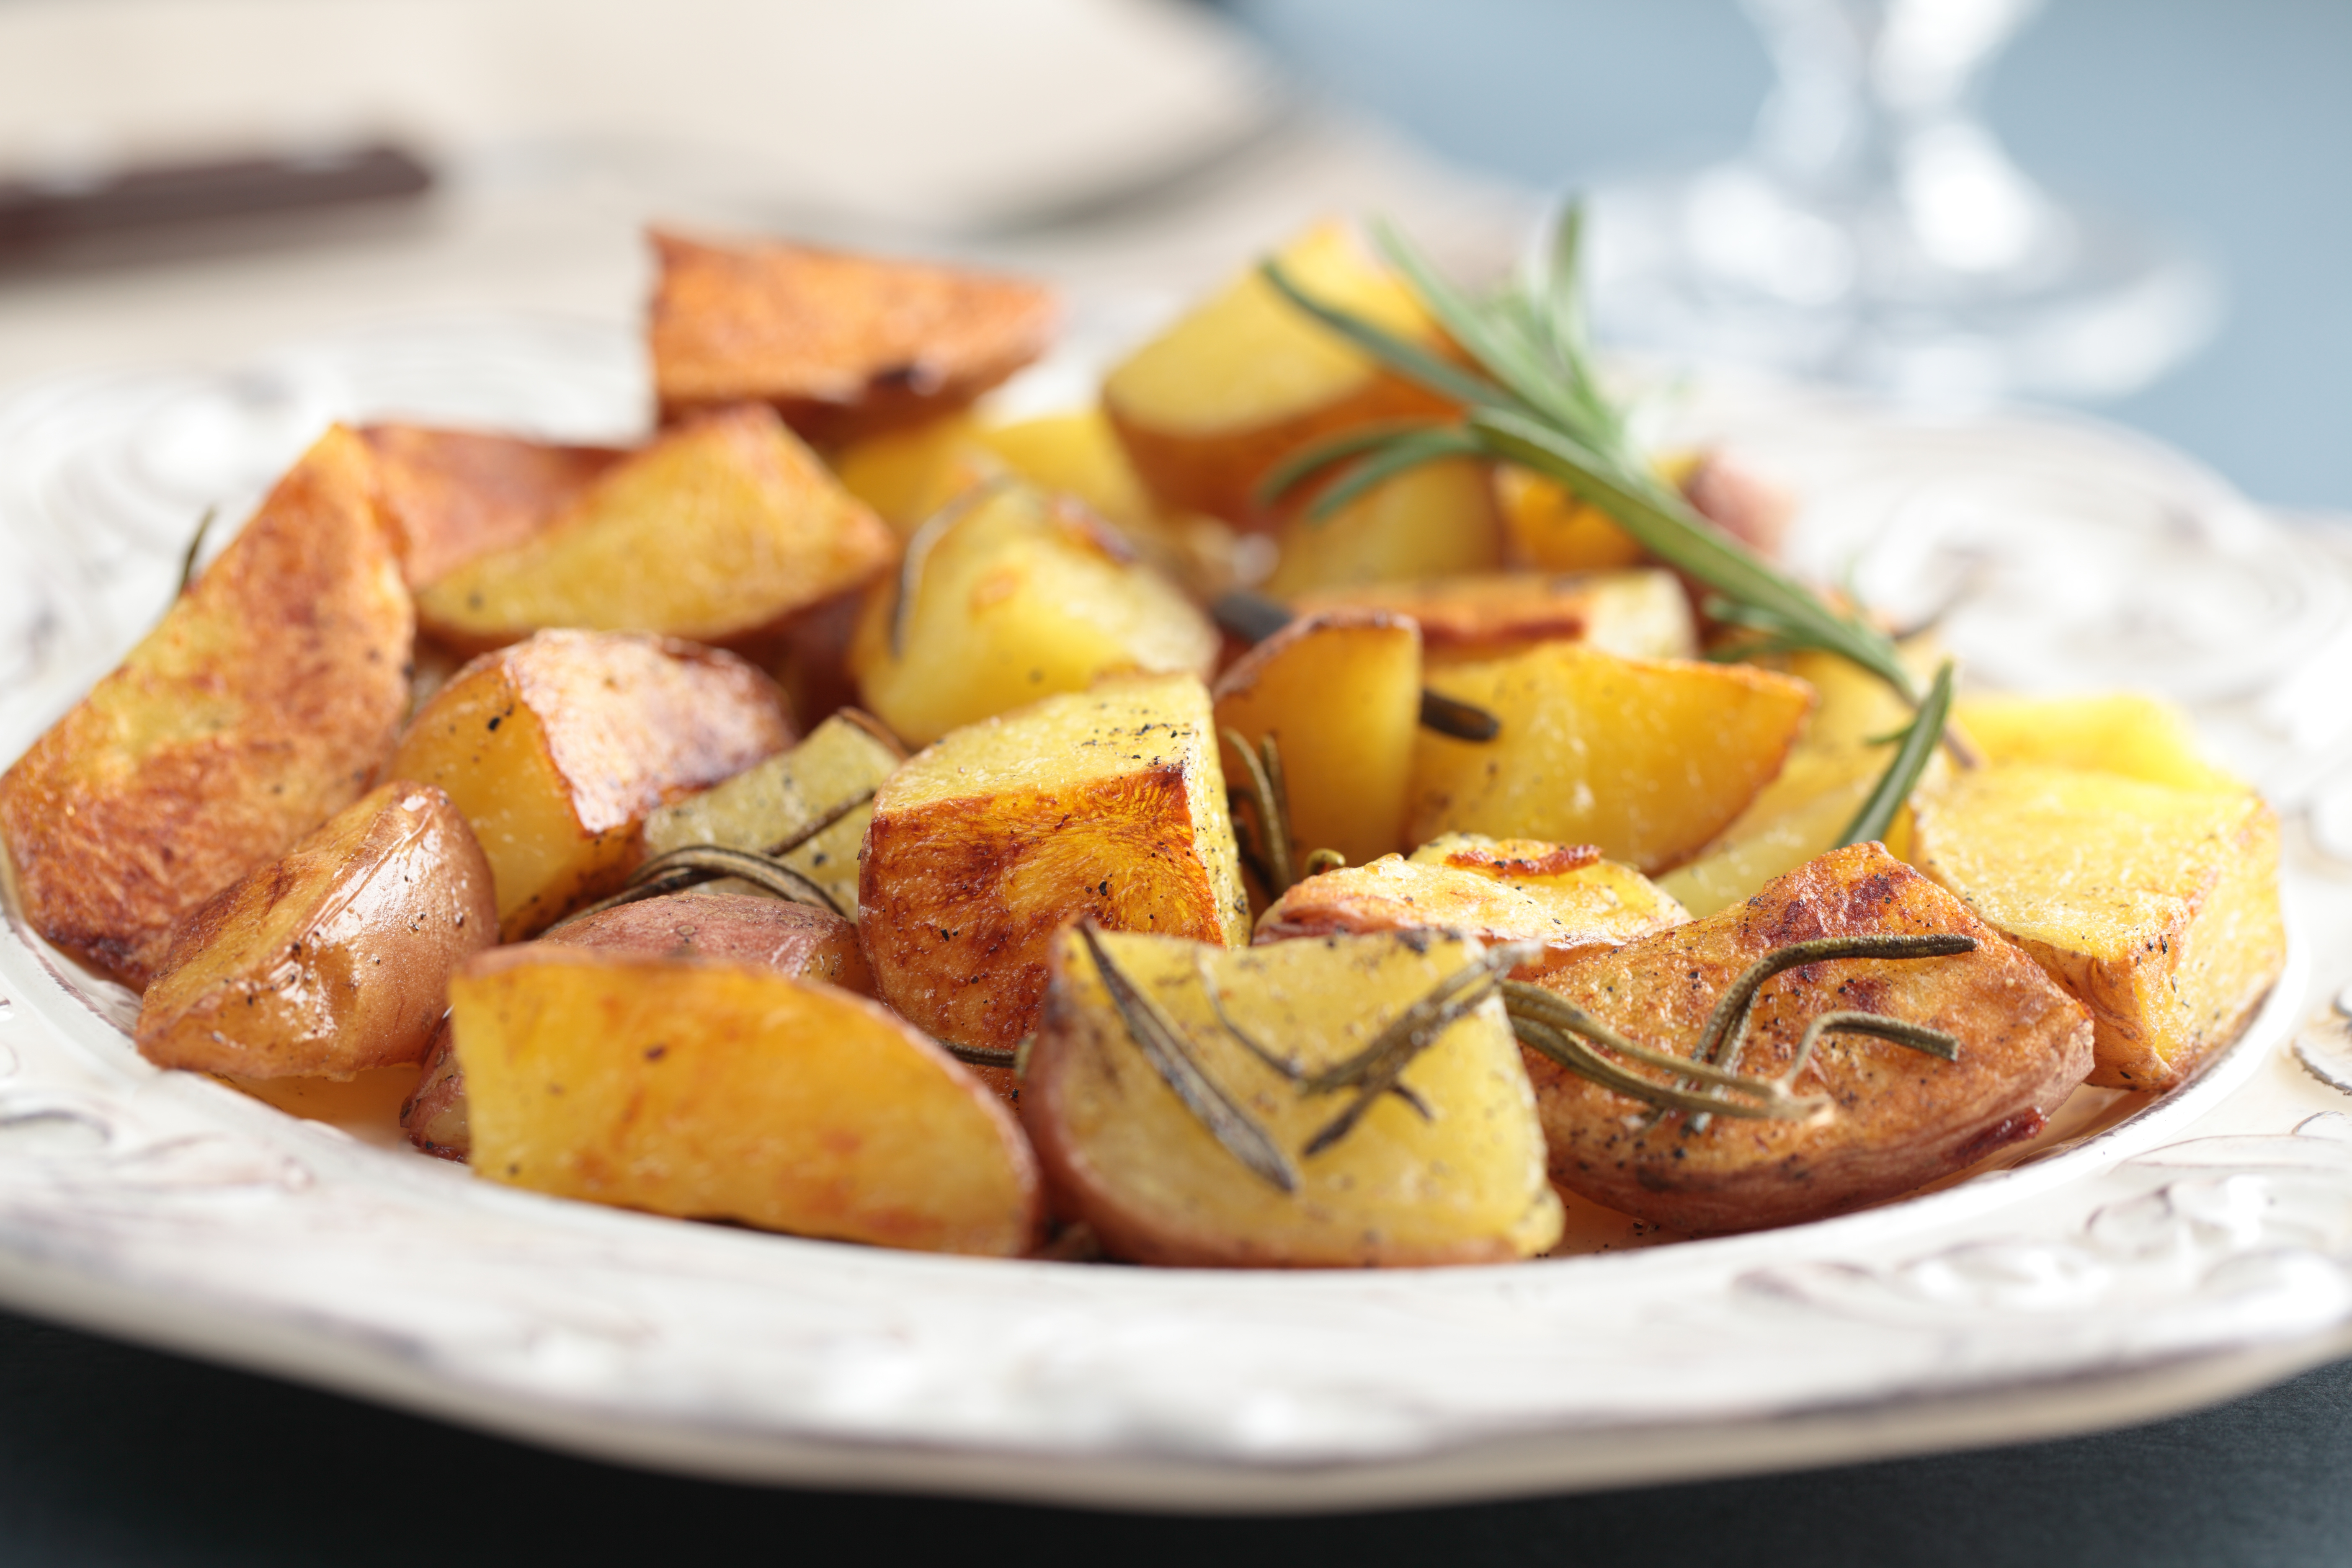 ... Side Dish Potatoes Oven Roasted Red Potatoes with Rosemary and Garlic